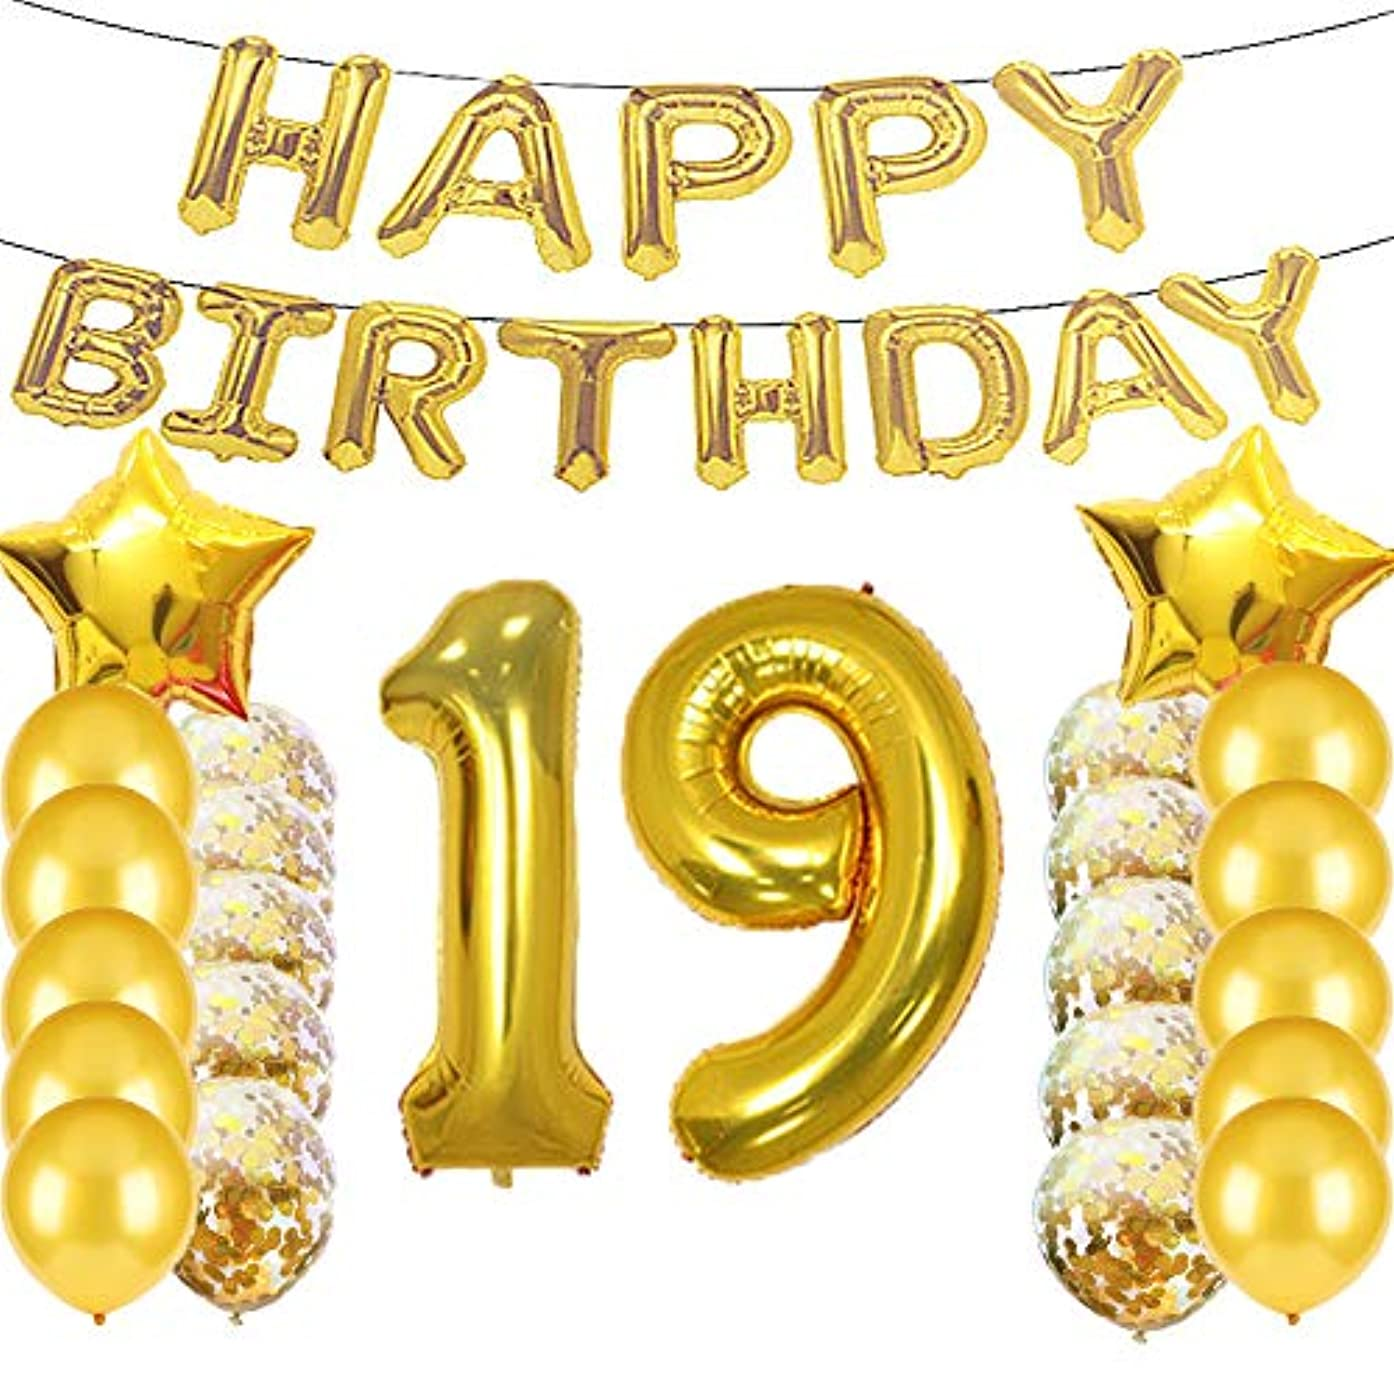 Sweet 19th Birthday Decorations Party Supplies,Gold Number 19 Balloons,19th Foil Mylar Balloons Latex Balloon Decoration,Great 19th Birthday Gifts for Girls,Women,Men,Photo Props